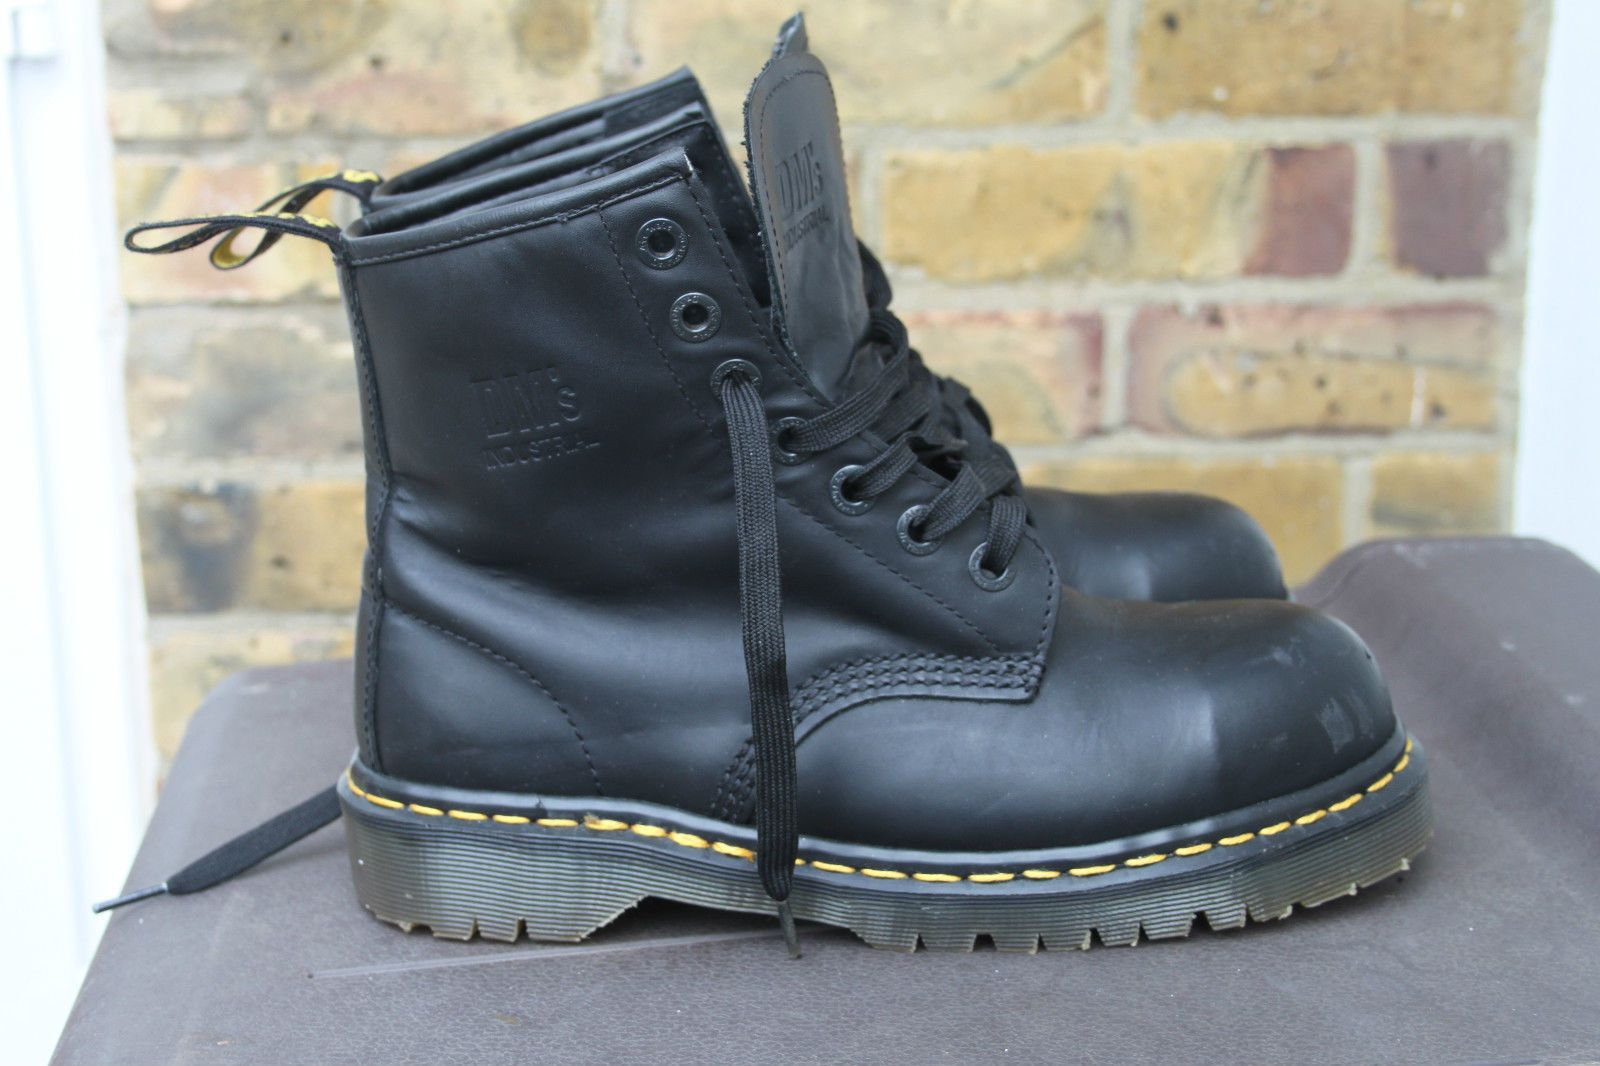 9dcea378ff7 Dr Martens Airwair Industrial Satra P9425 7 Eyelet Steel Toe Safety Boots  UK 6 in Clothes